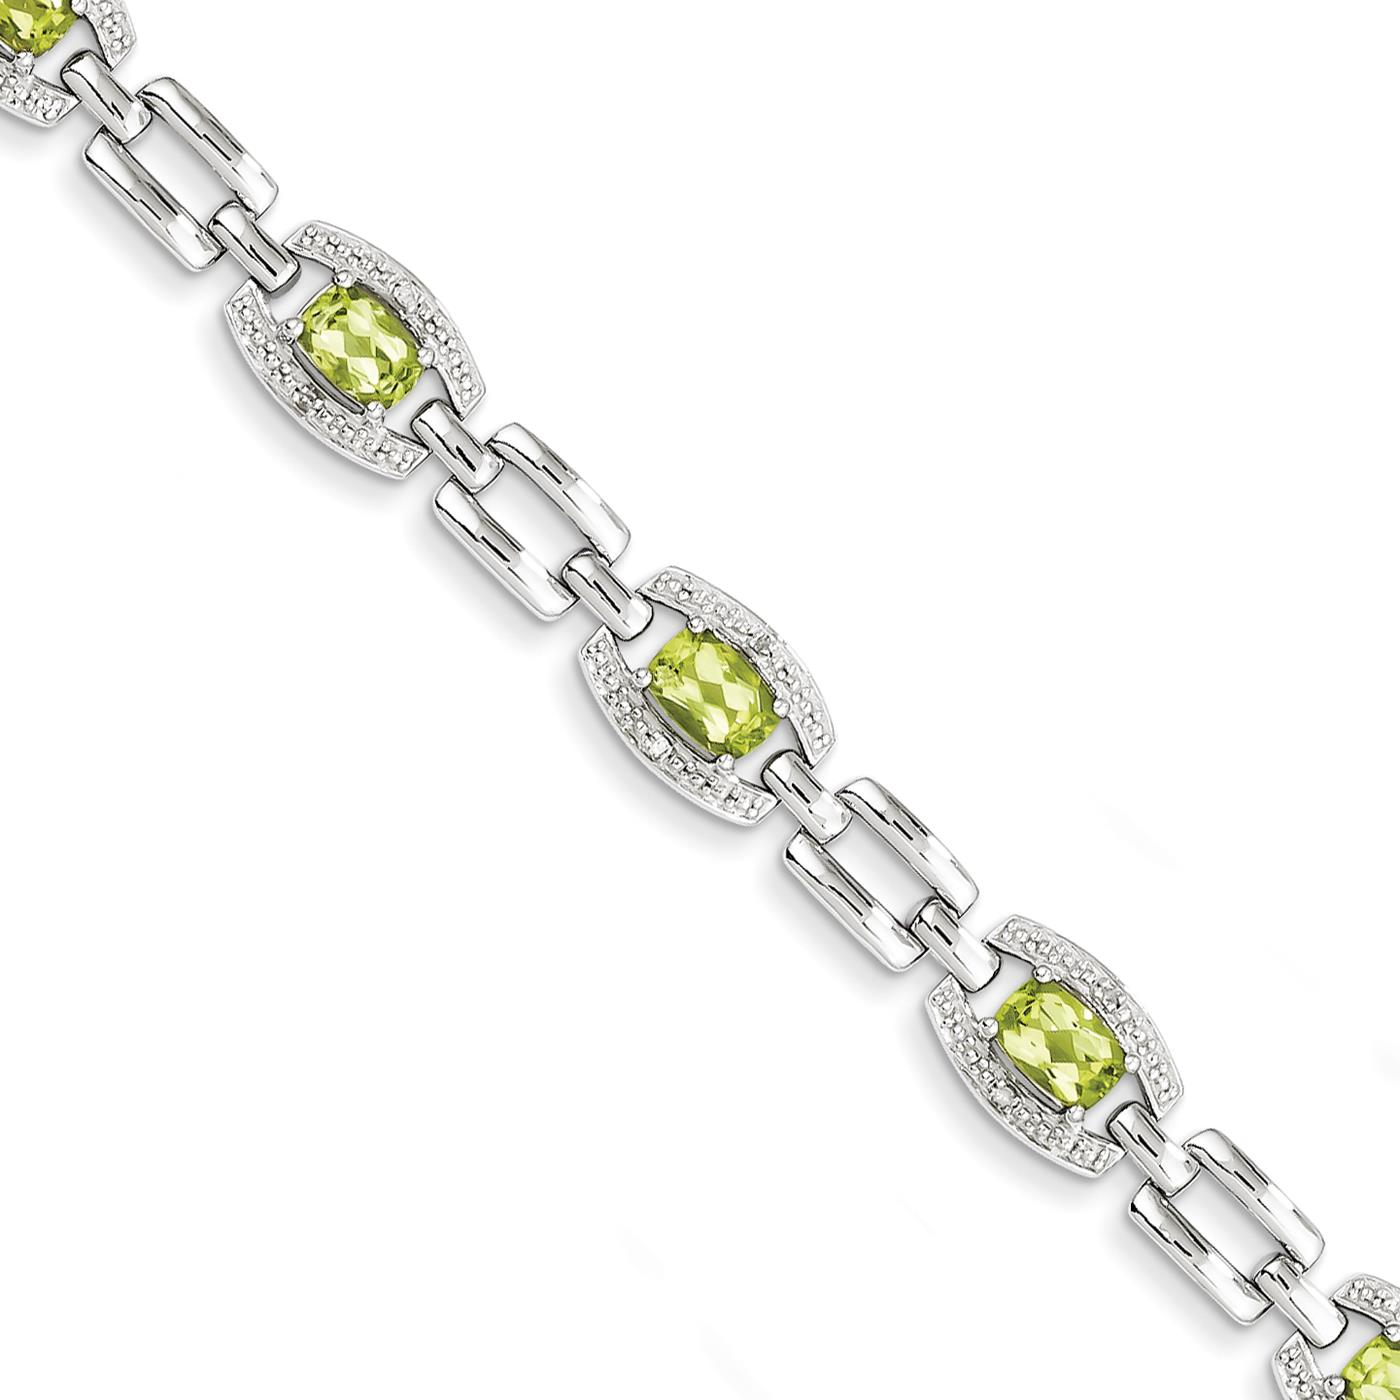 "925 Sterling Silver 8mm Polished Diamond & Peridot Bracelet 7"" by Fusion Collections"